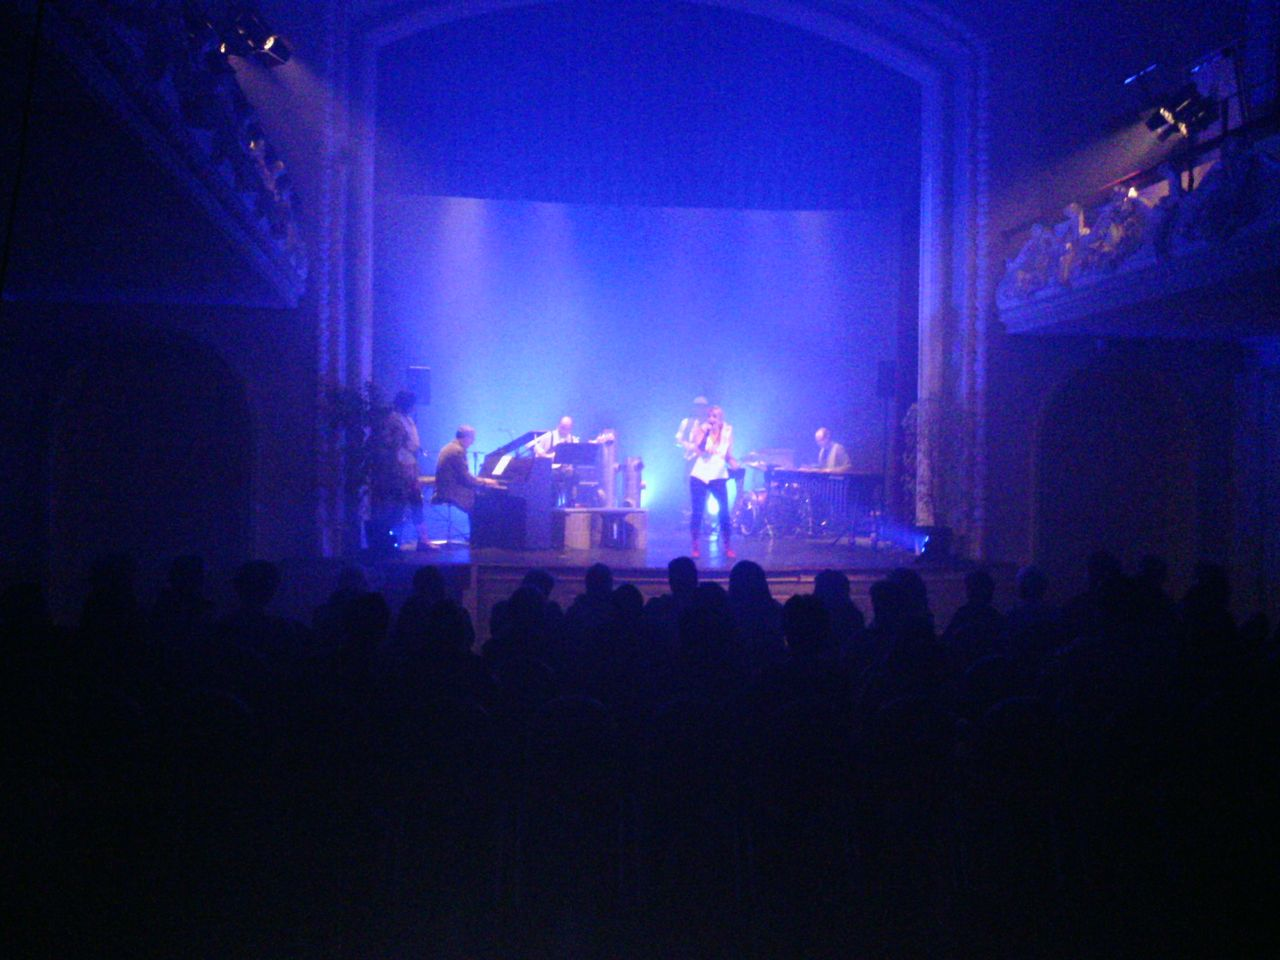 spectacle nocturnologie (4)